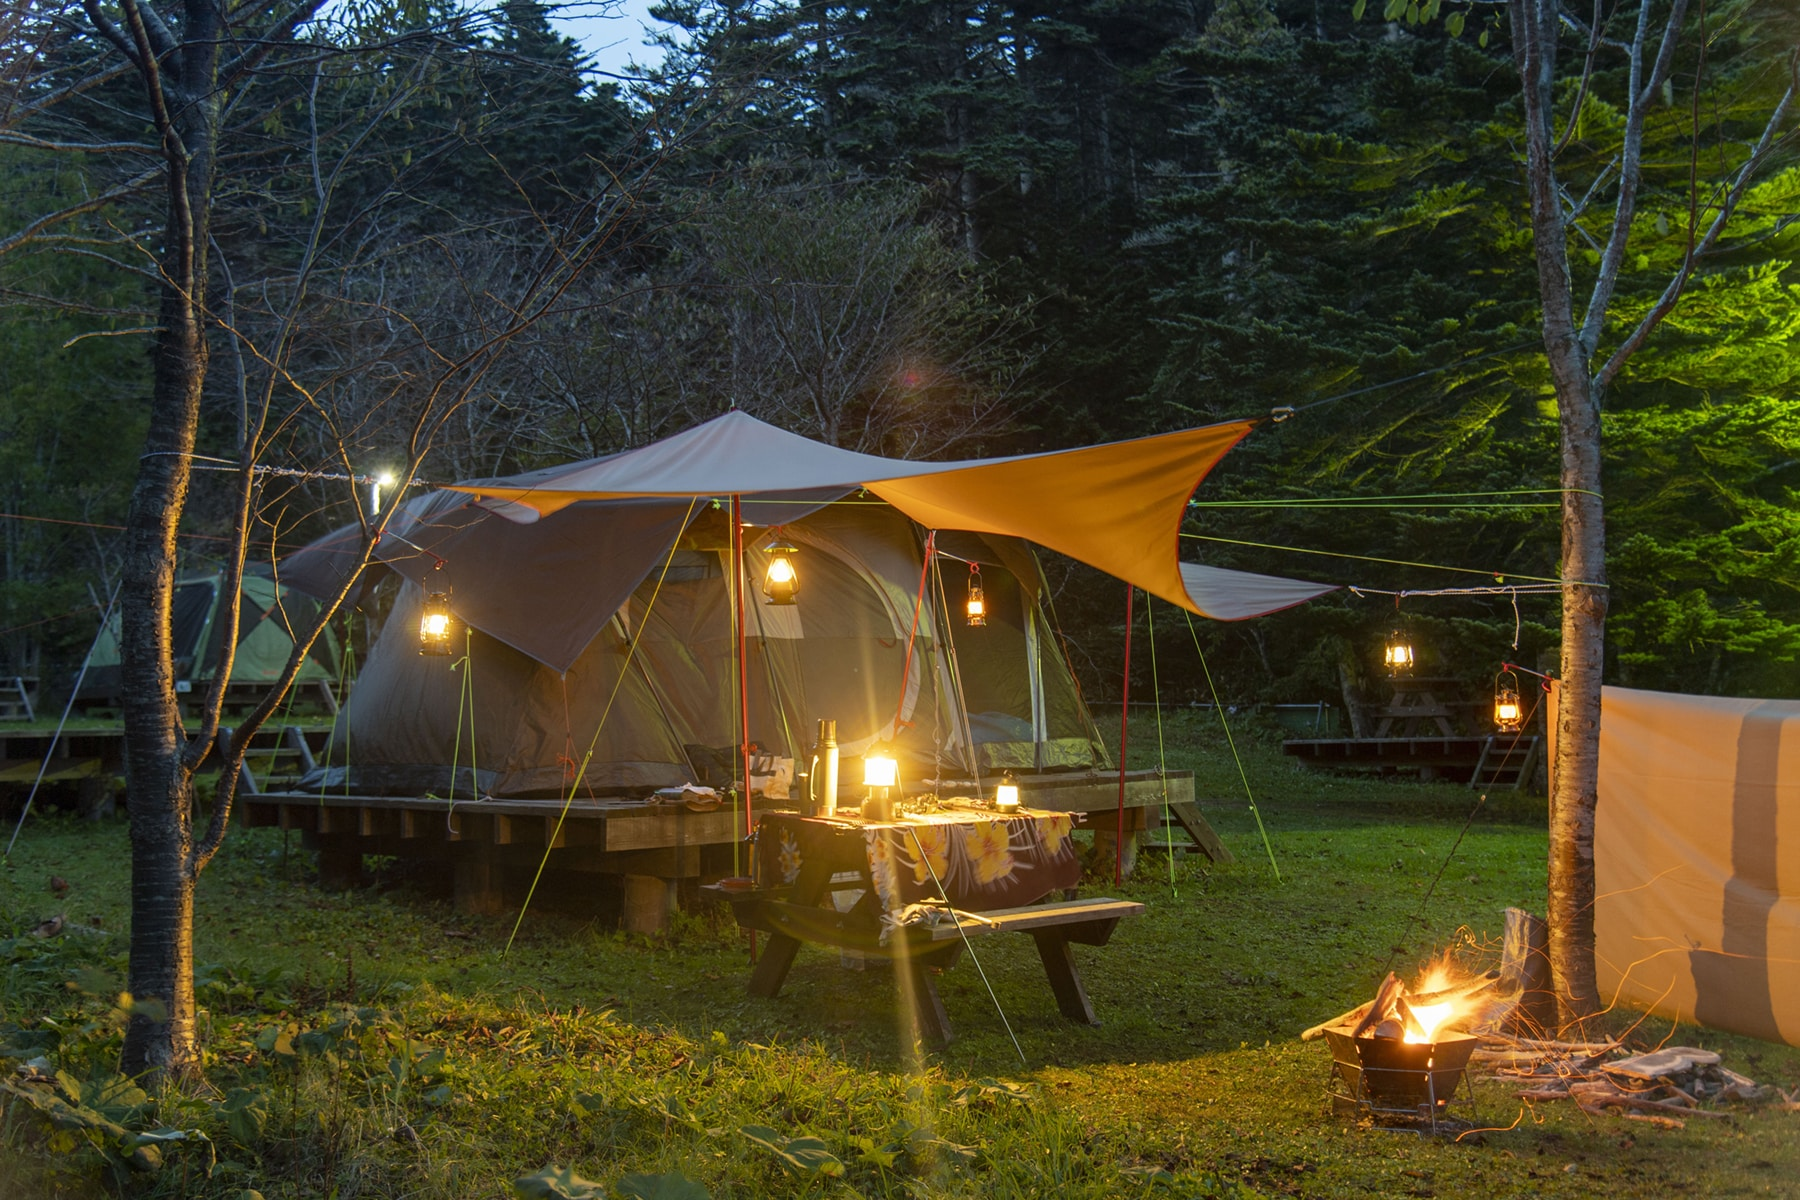 This is the cover photo for our Best Camping Tart article. It features a tent, camping tarp, and campfire in the woods.